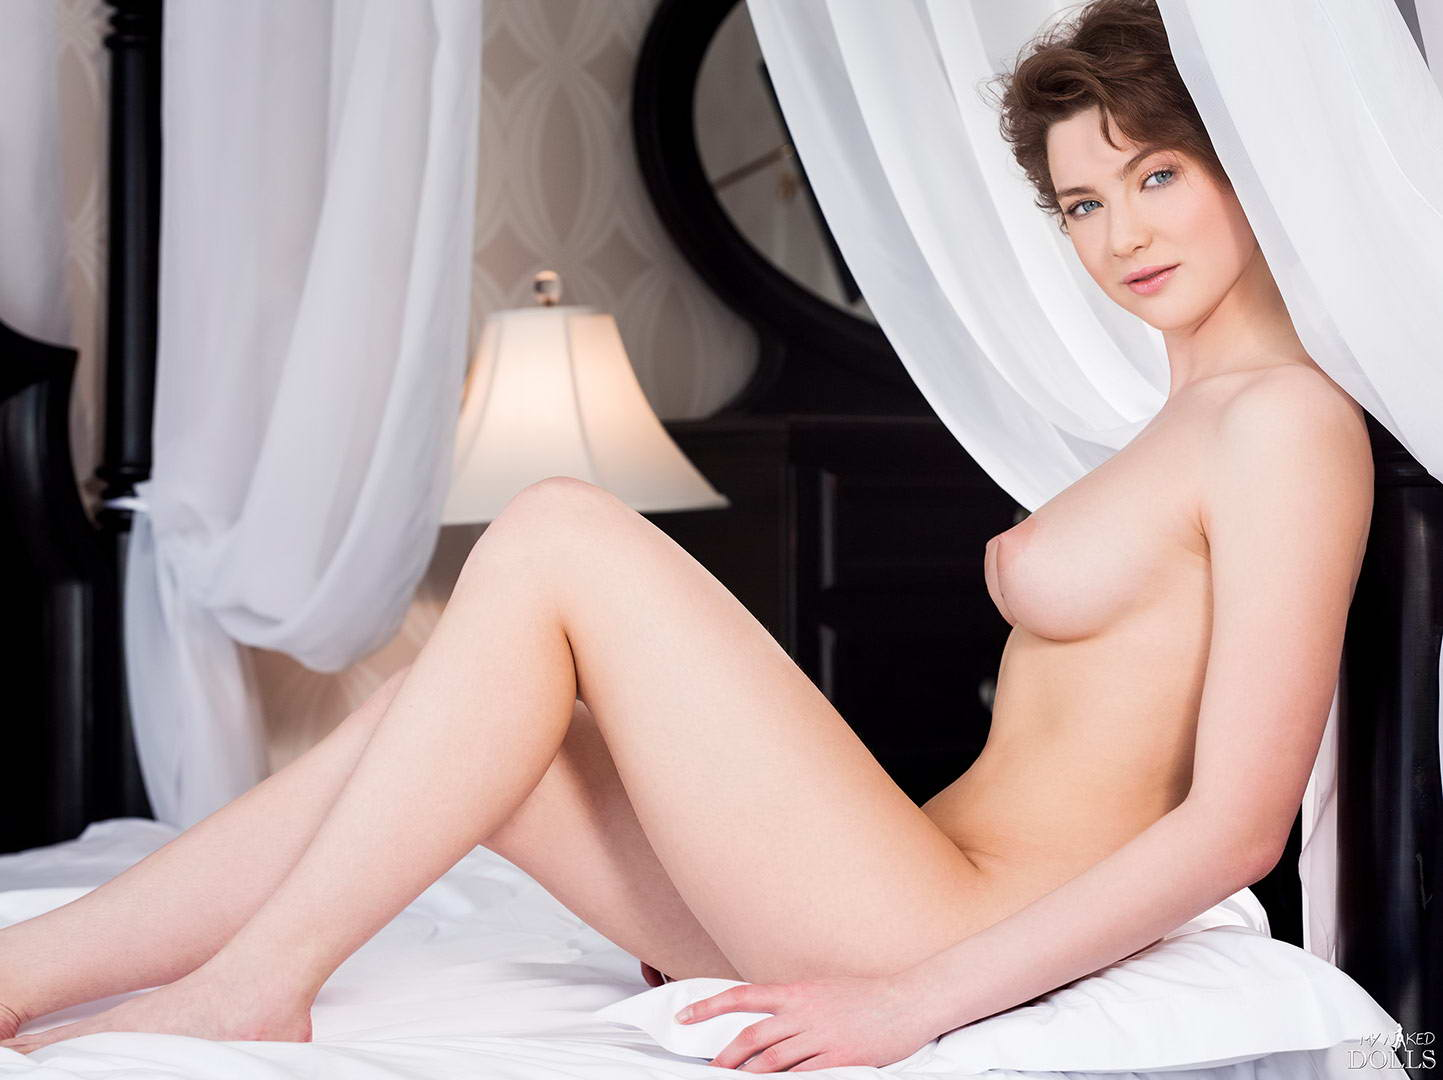 Naked wife pics